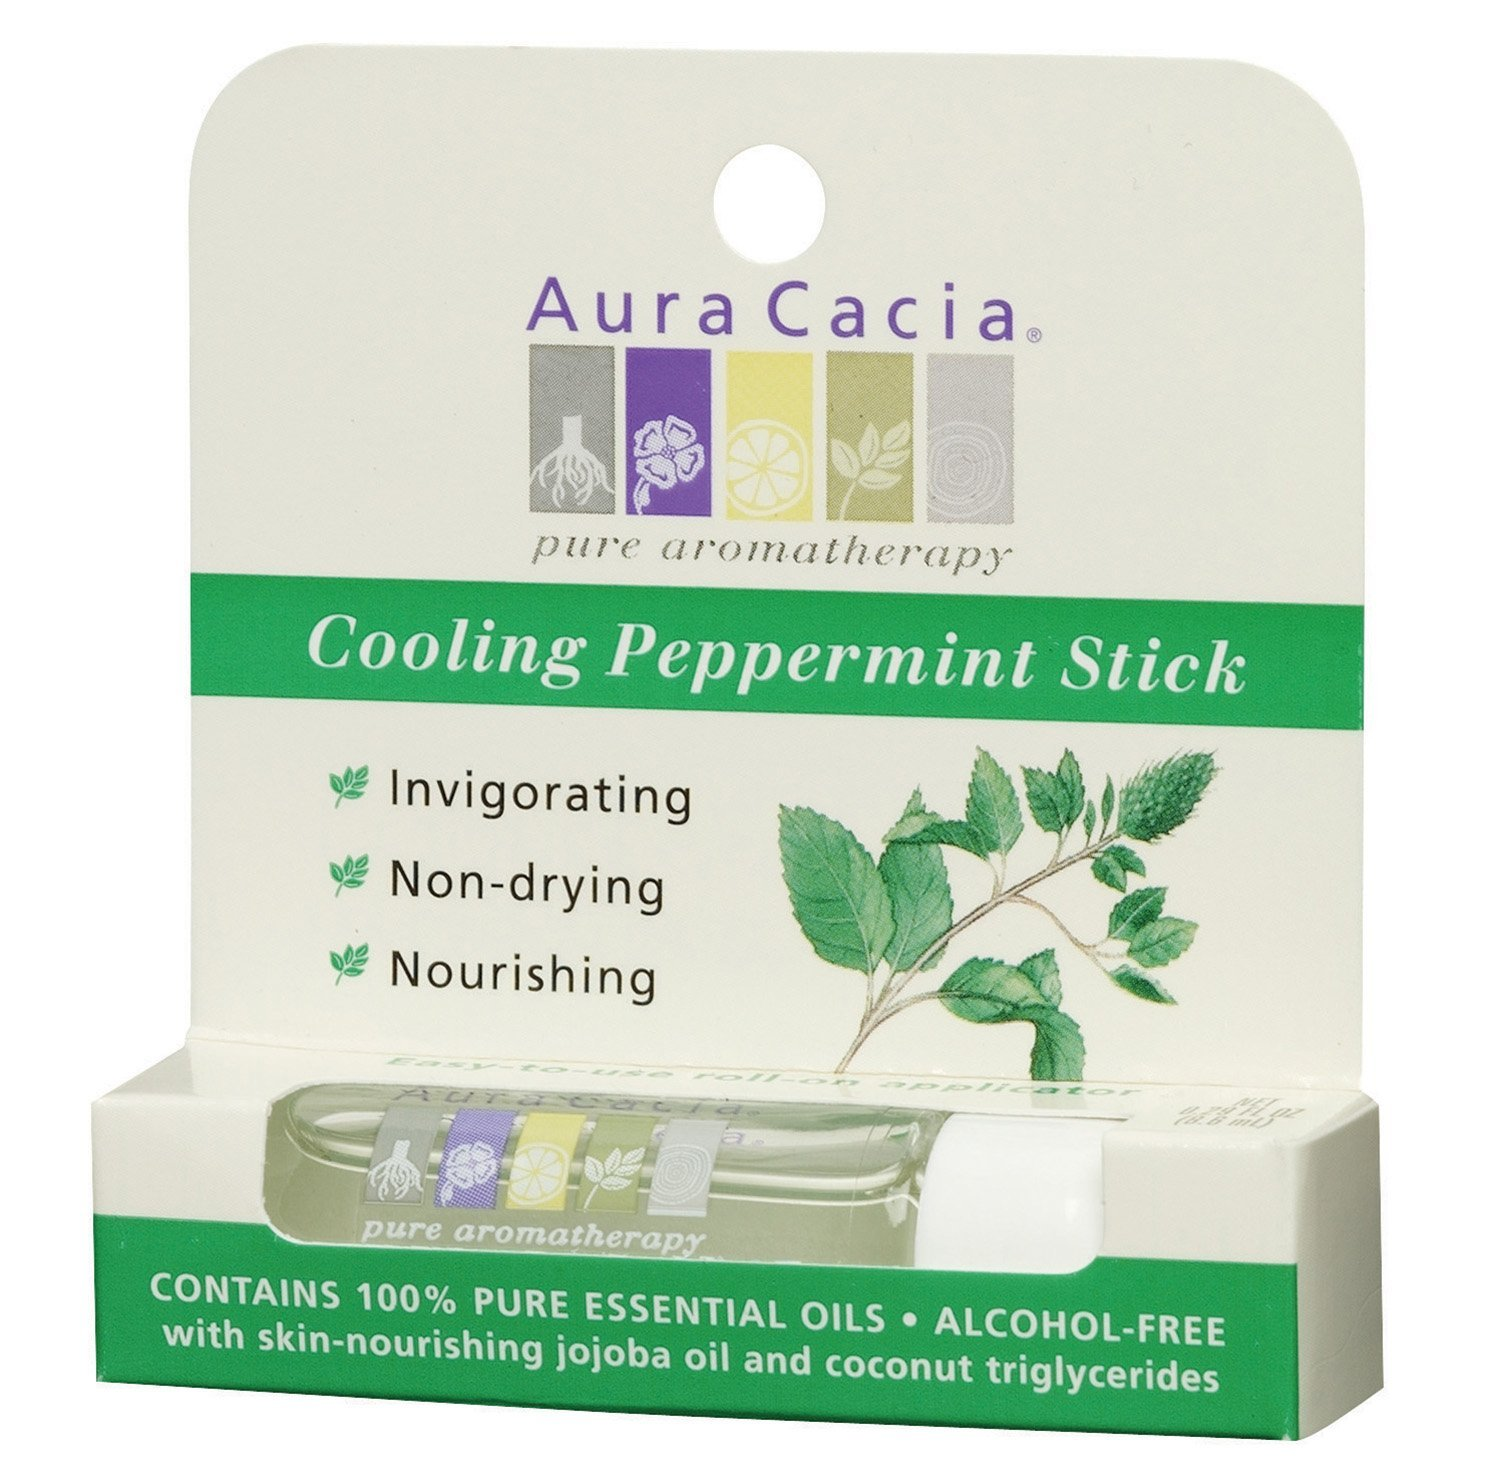 Aura Cacia Aromatherapy Roll-On Stick, Cooling Peppermint, 0.29 Fluid Ounce (Pack of 3)